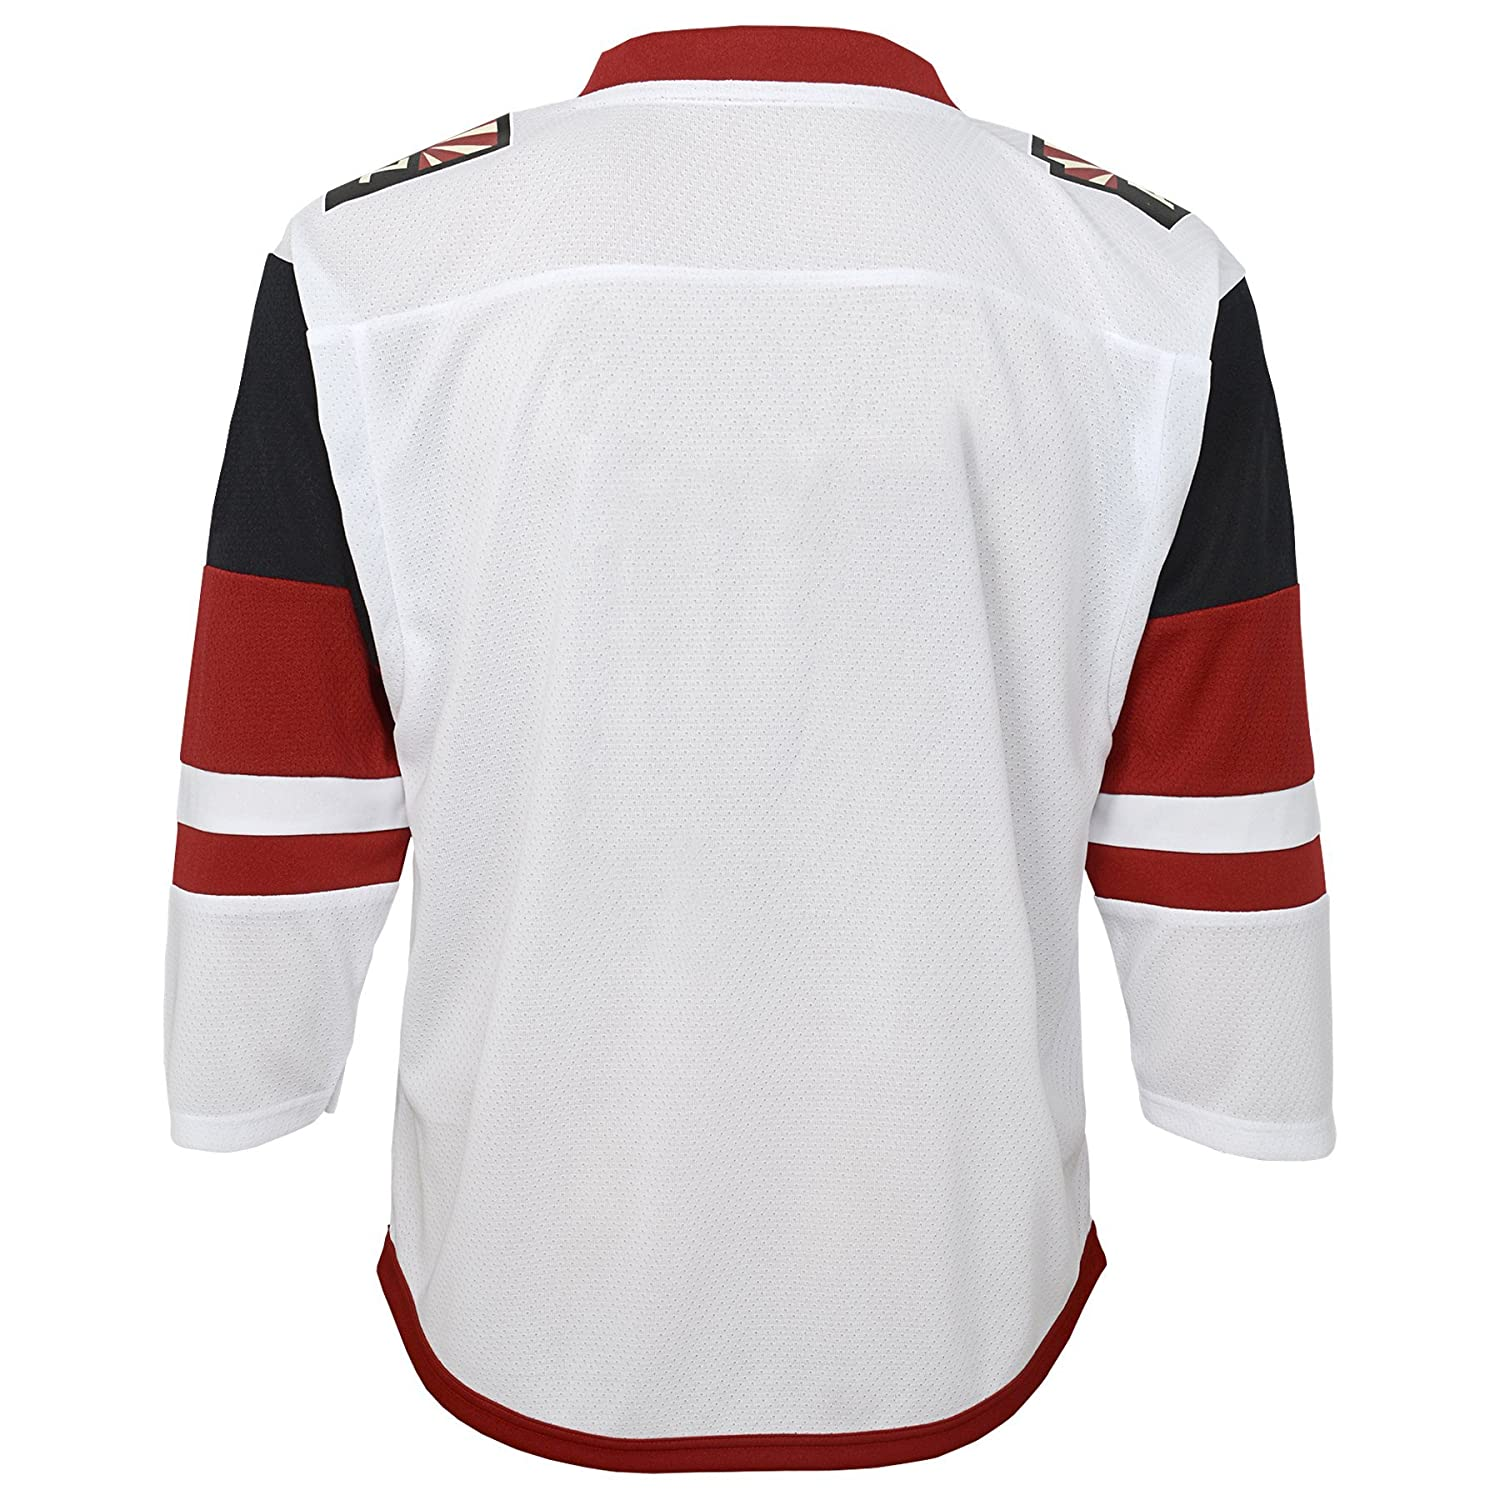 Outerstuff NHL NHL Arizona Coyotes Toddler Replica Jersey-Away White Toddler One Size